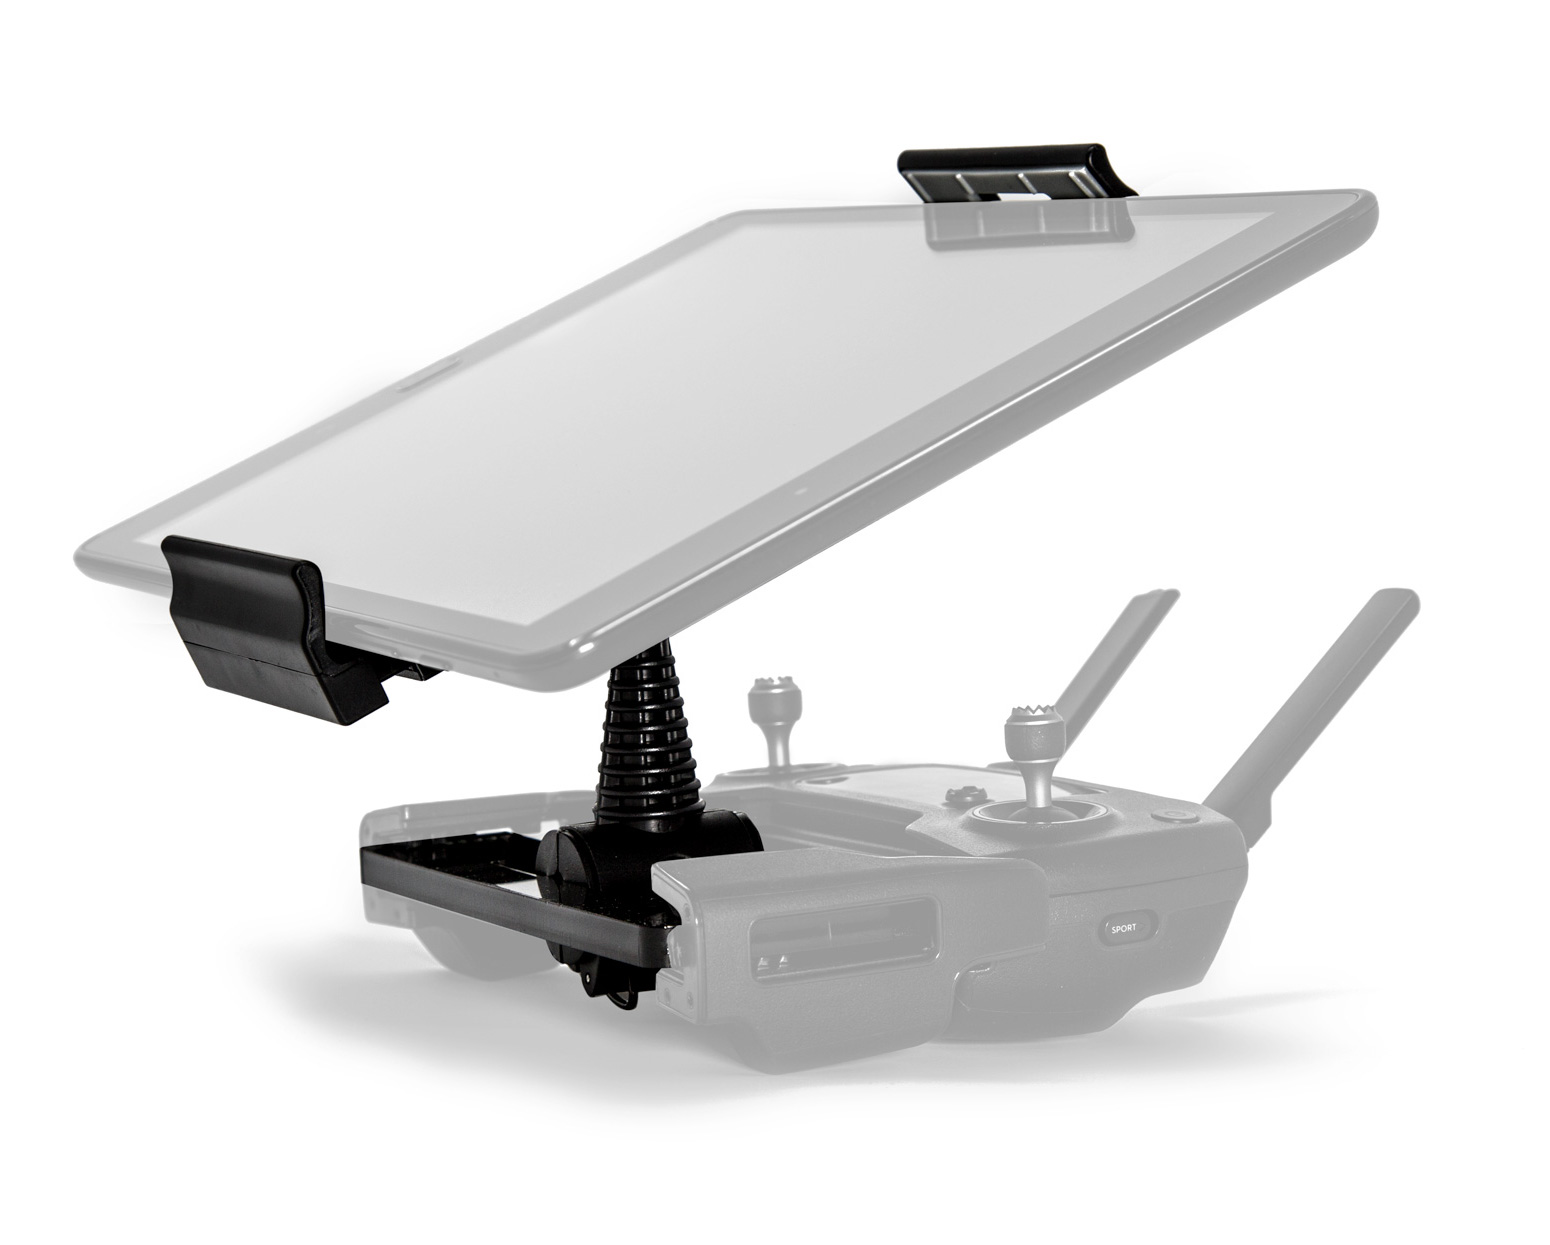 Ultimaxx Foldable Extender 4-12 Inches Tablet Stand Holder, Snap On / Off Bracket for DJI Mavic PRO and DJI Spark Controllers